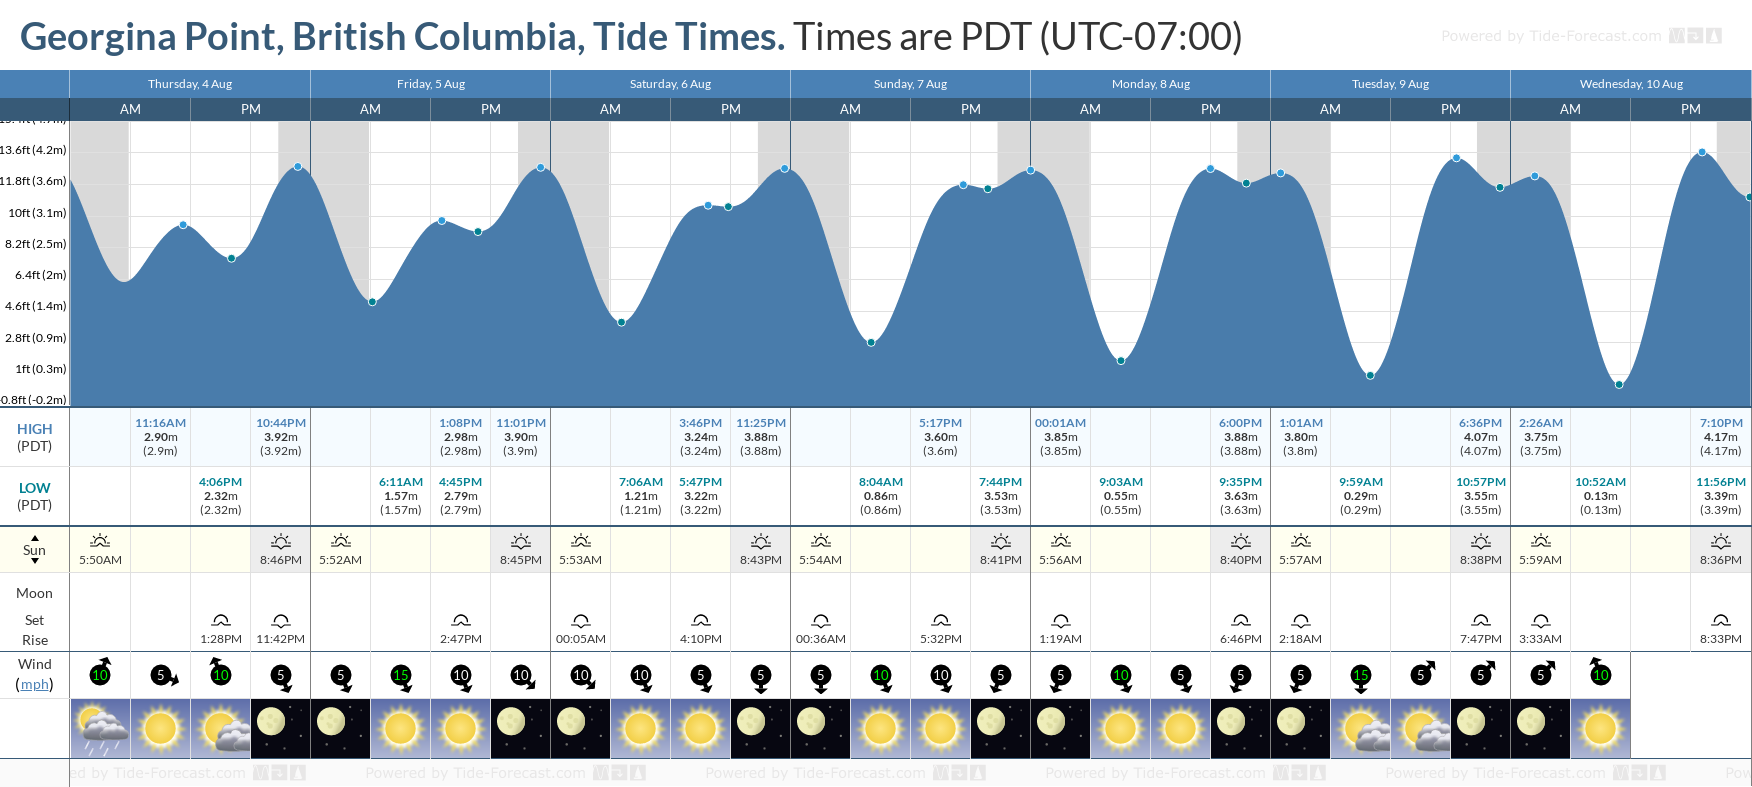 Georgina Point, British Columbia Tide Chart including high and low tide tide times for the next 7 days